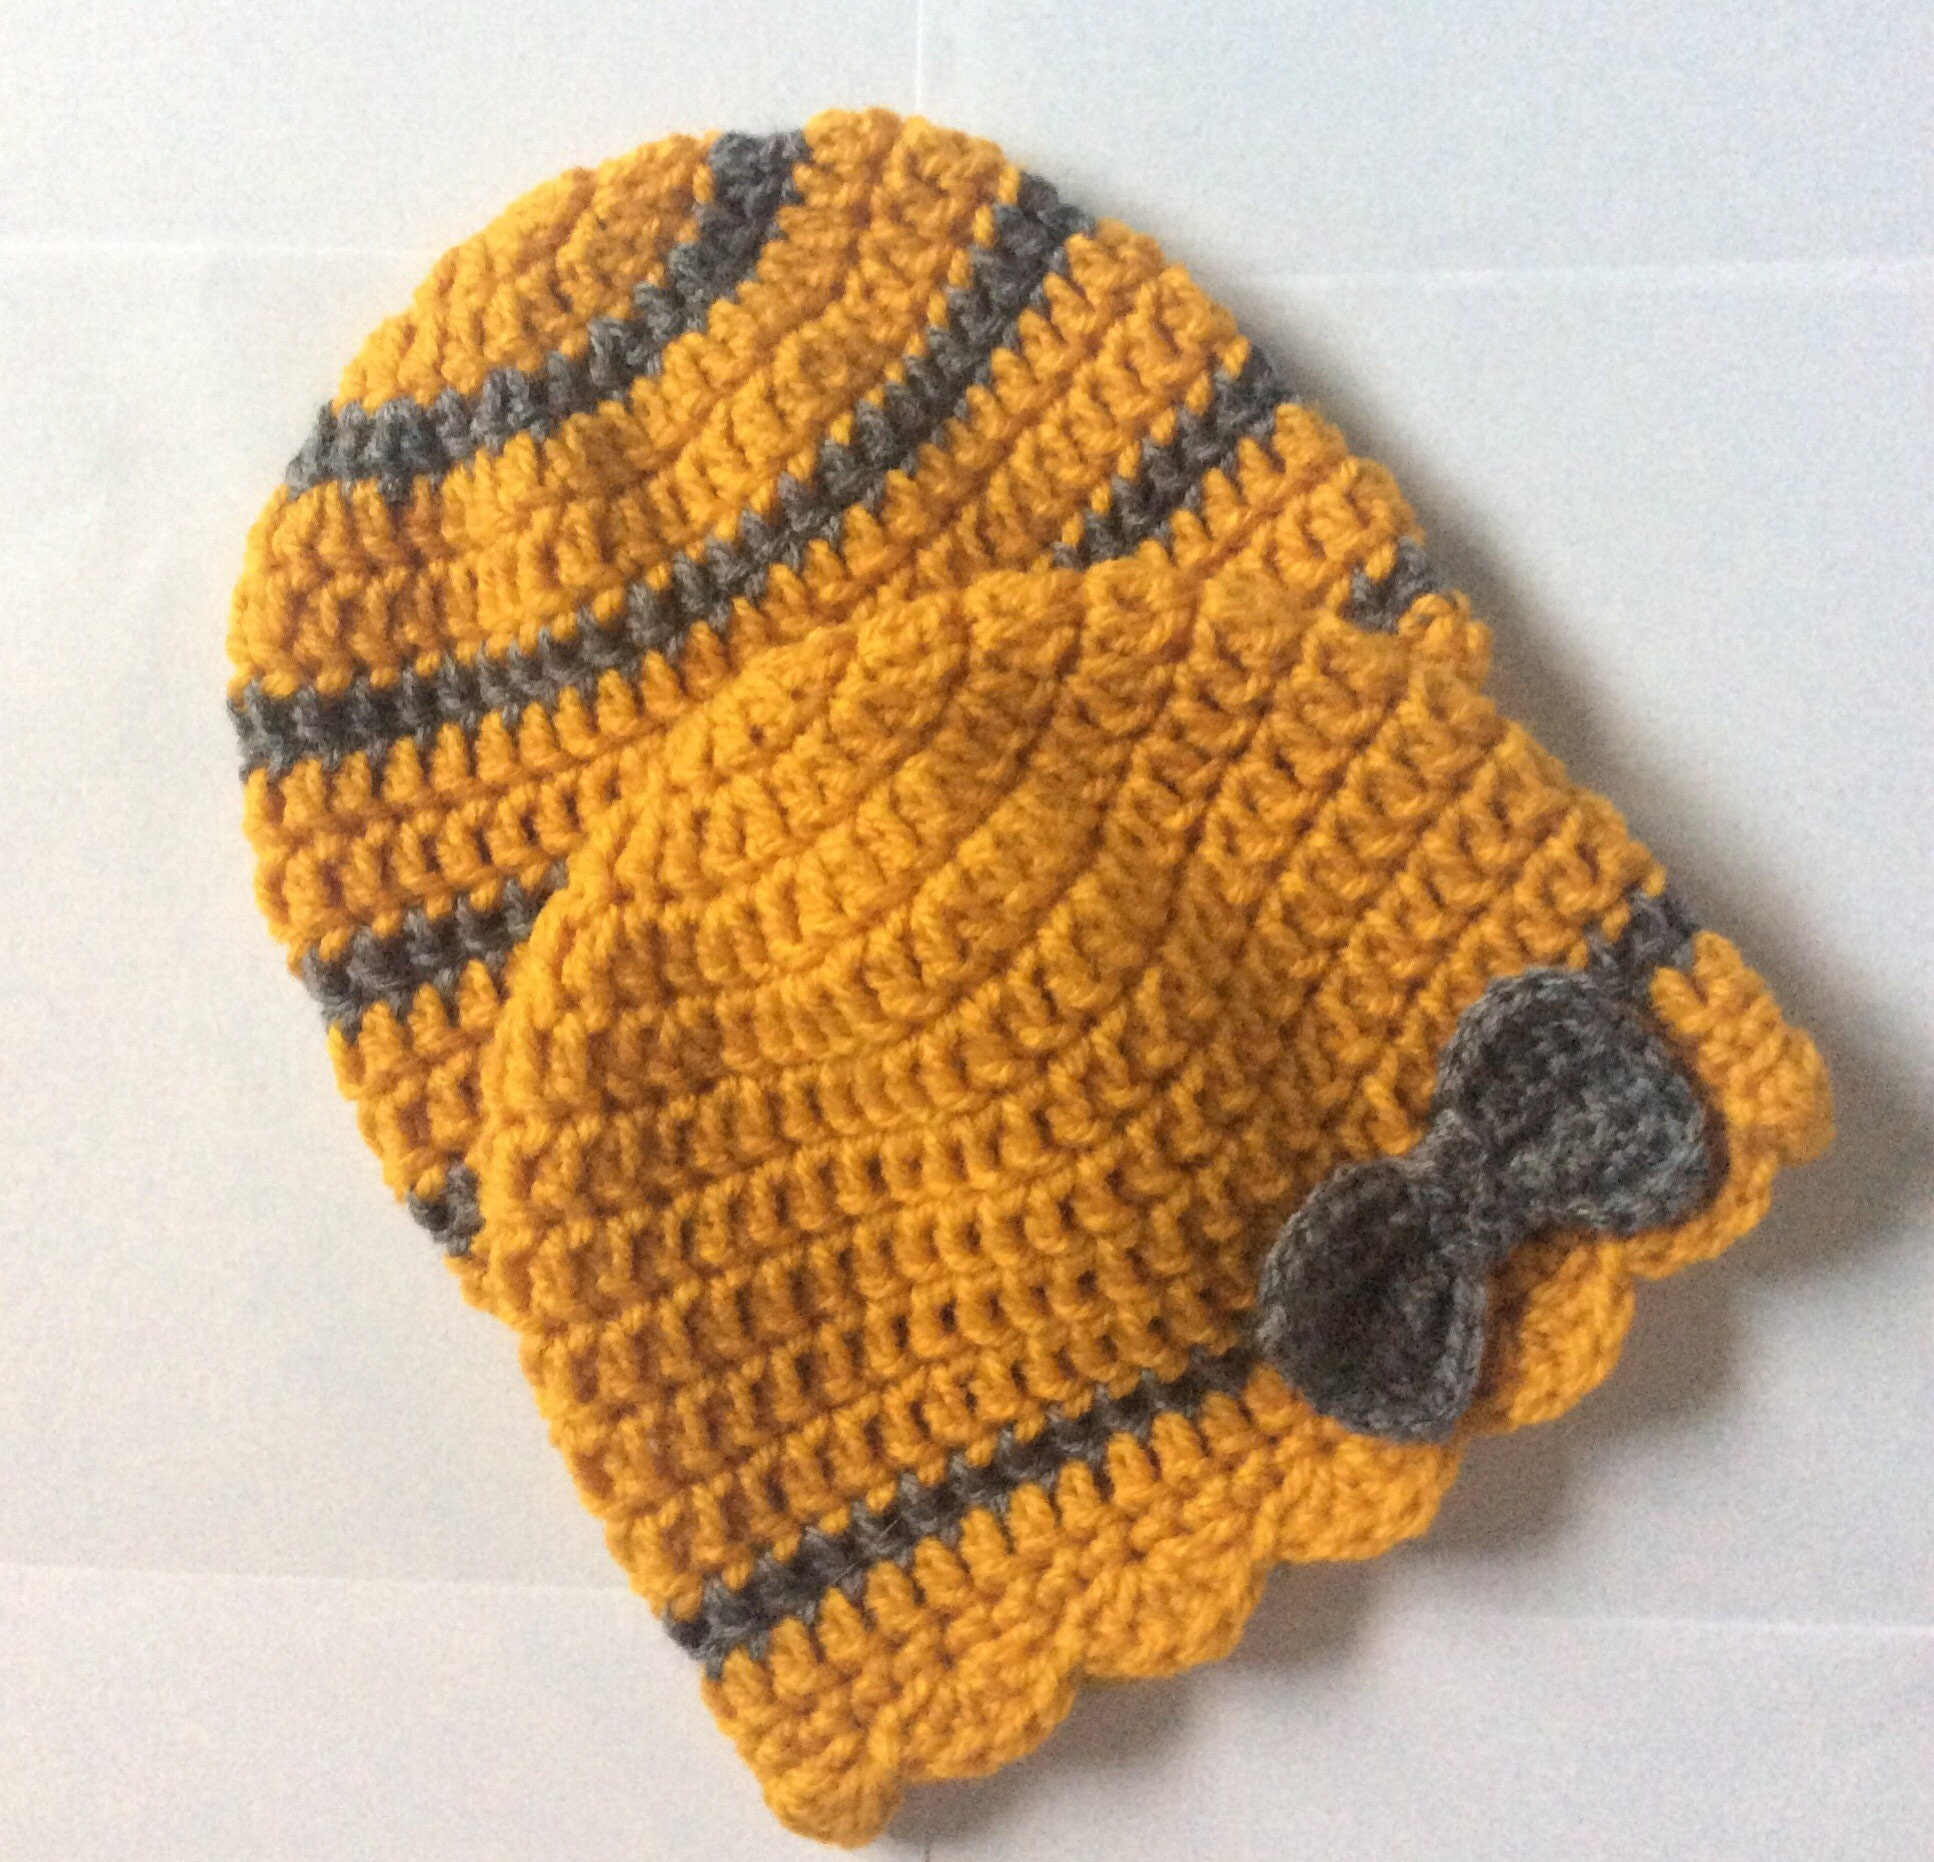 Crochet baby hat Reborn babies girl hat Twins baby shower gift clothing 36 mths baby gift Twins hats Yellow mustard baby hat Hat with bow